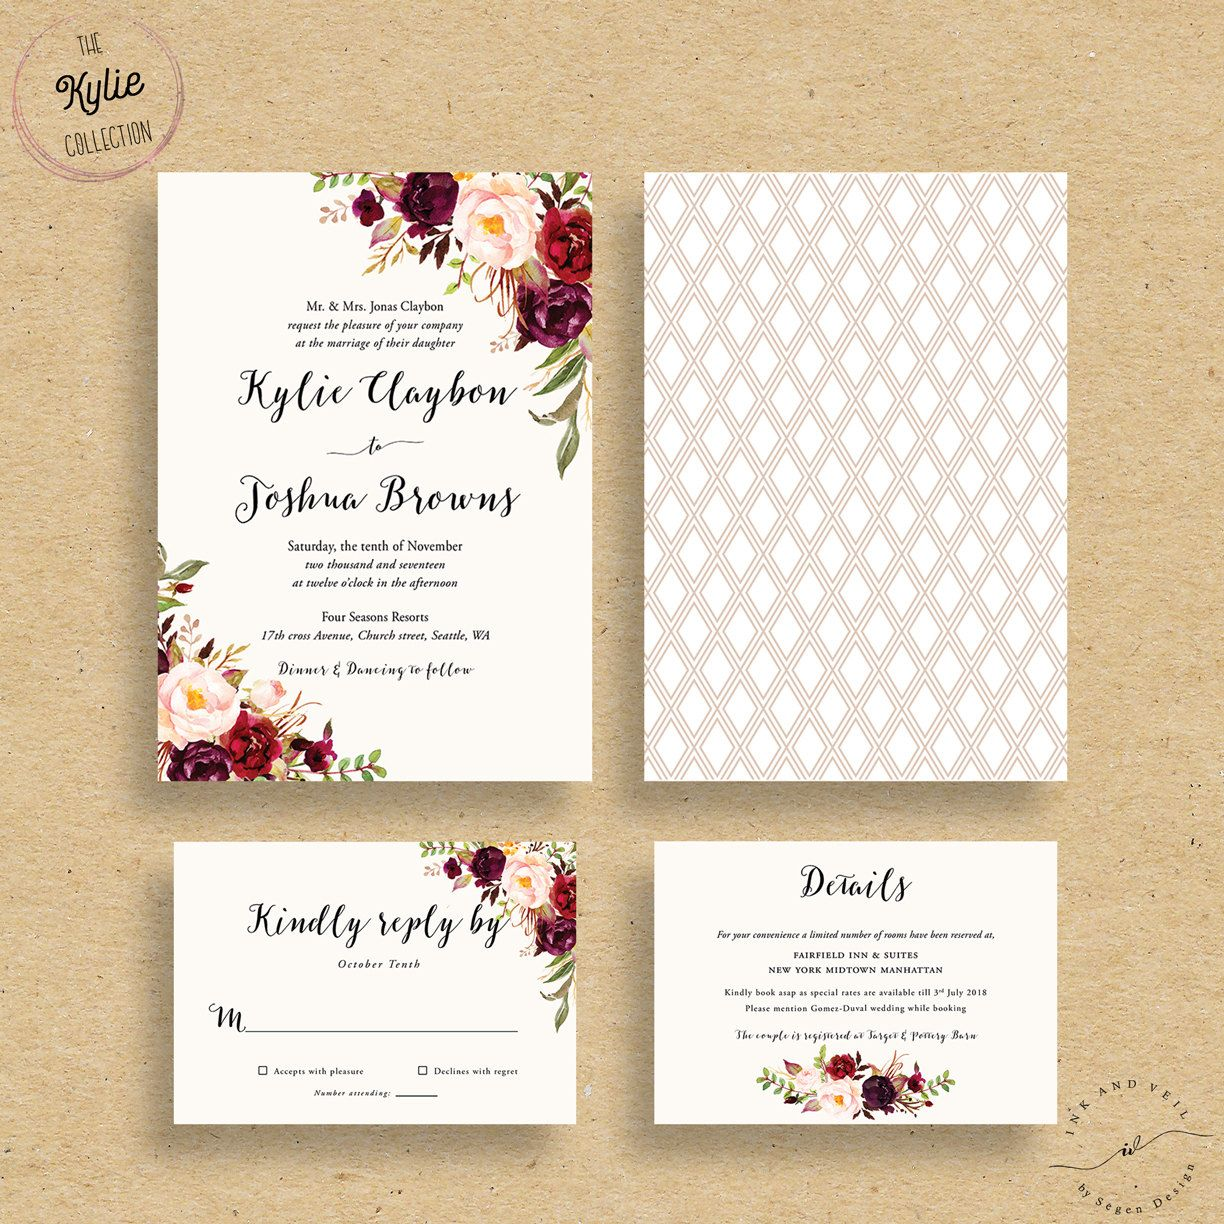 wedding invitations with pictures Marsala Wedding Invitations Fall Floral Wedding Invites Autumn Winter Wedding Invitations Bohemian Rustic